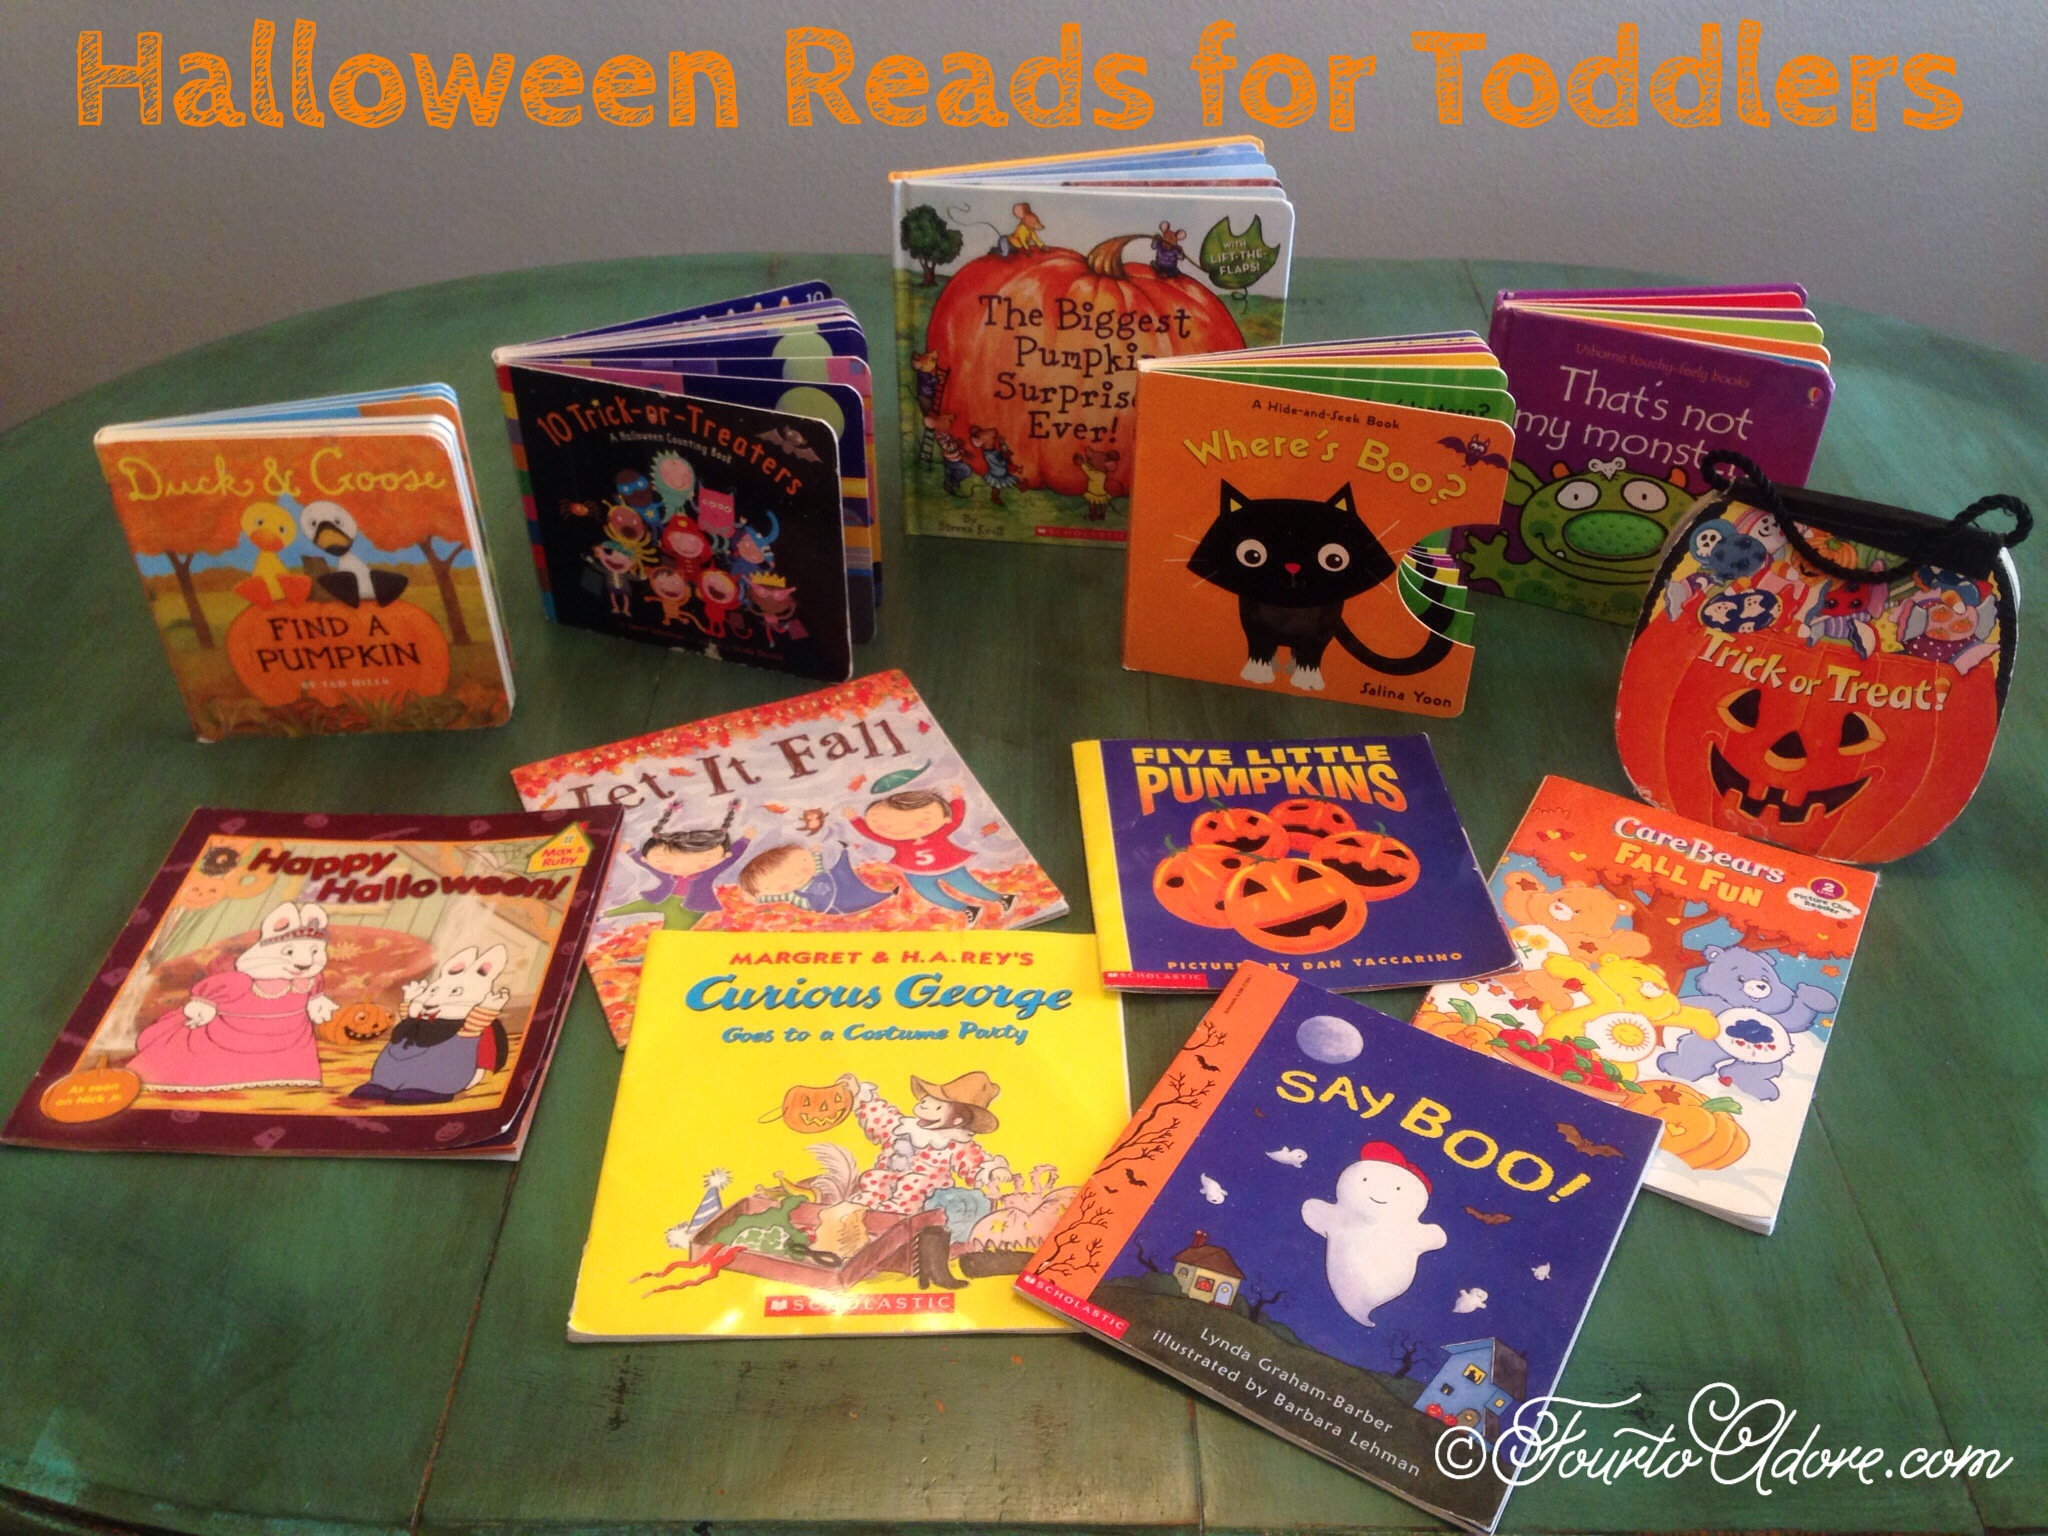 Halloween books for toddlers and preschoolers